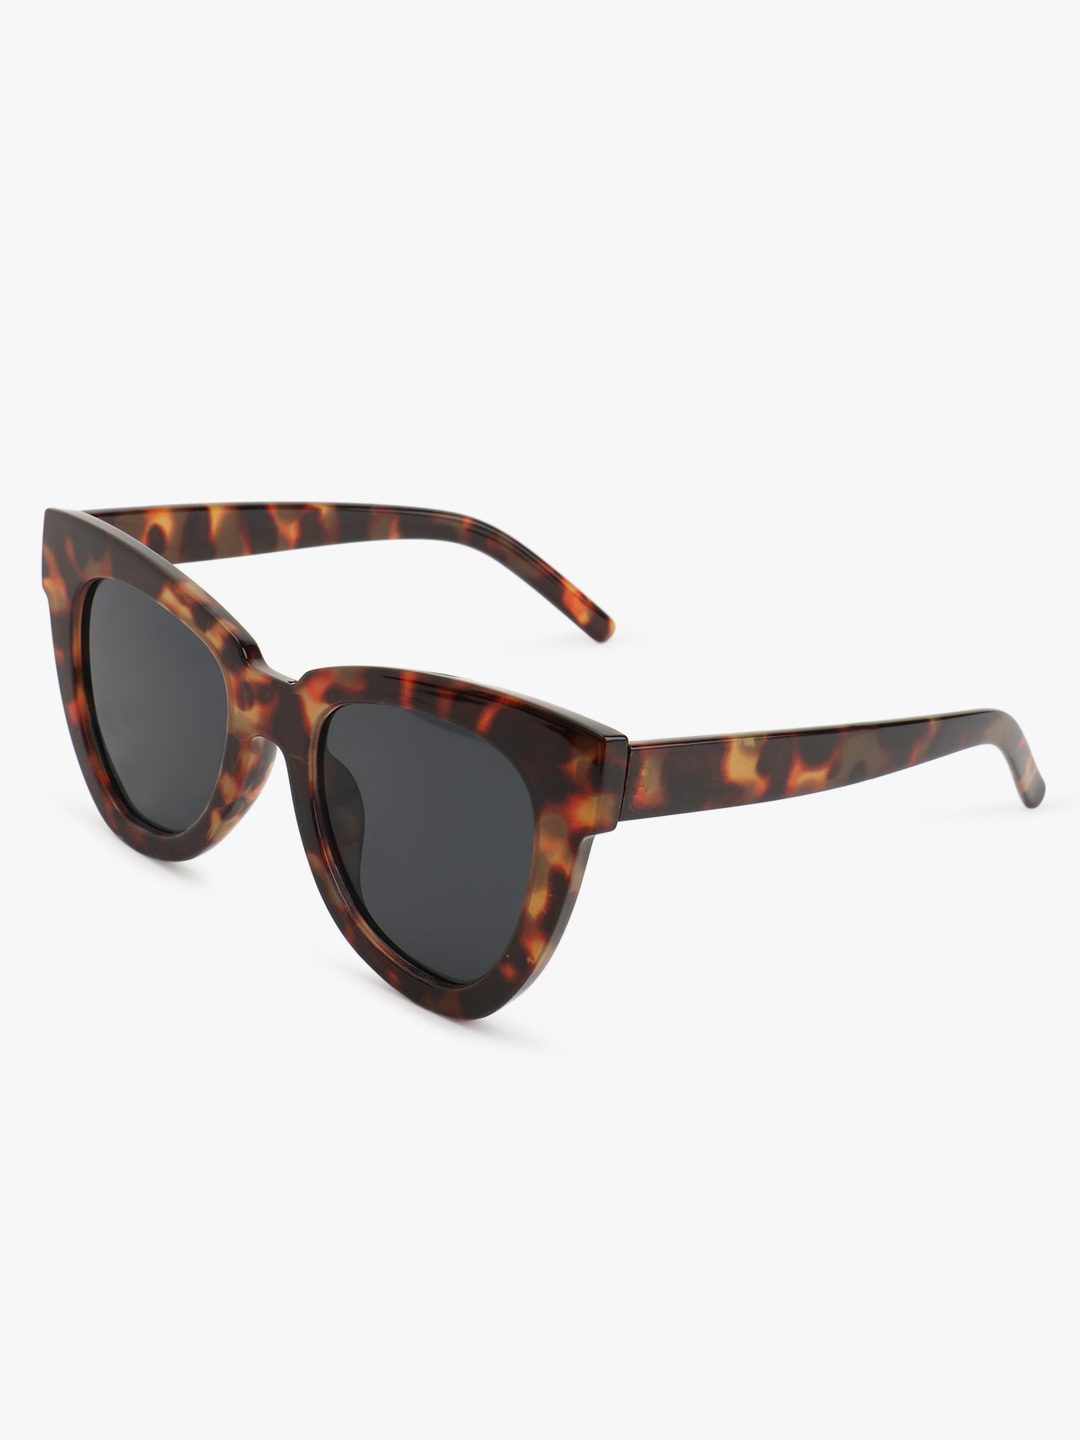 Sneak-a-Peek Brown Tortoise Rimmed Sunglasses 1